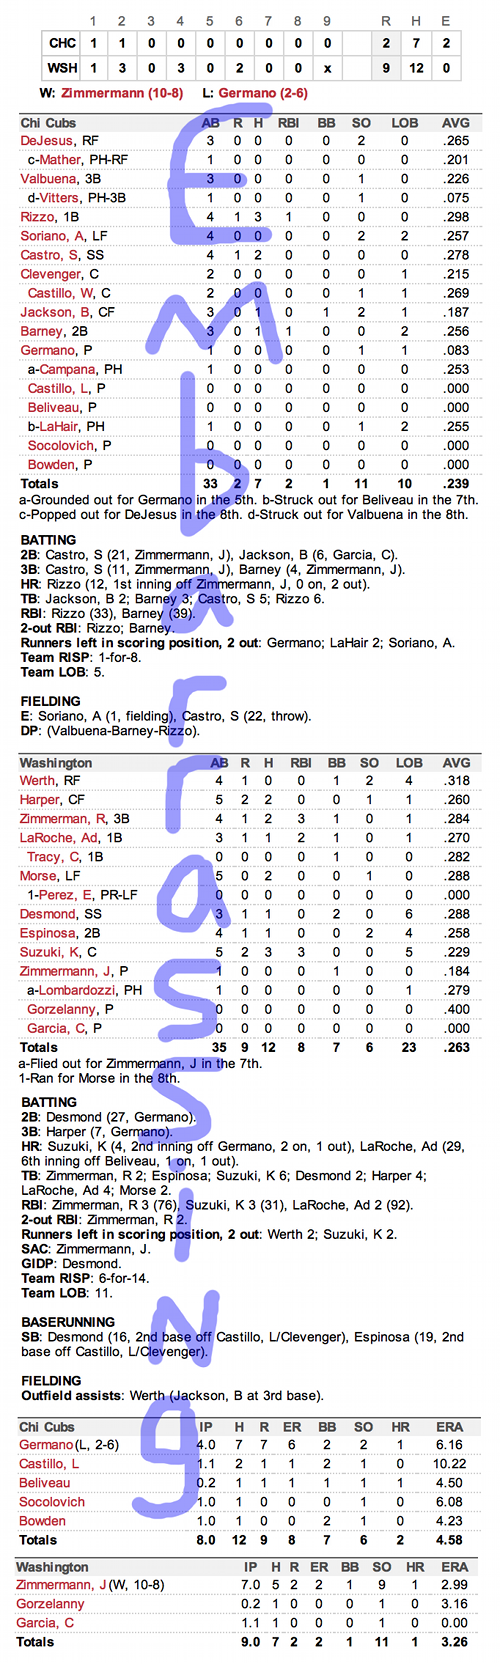 Enhanced Box Score: Cubs 2, Nationals 9 – September 6, 2012